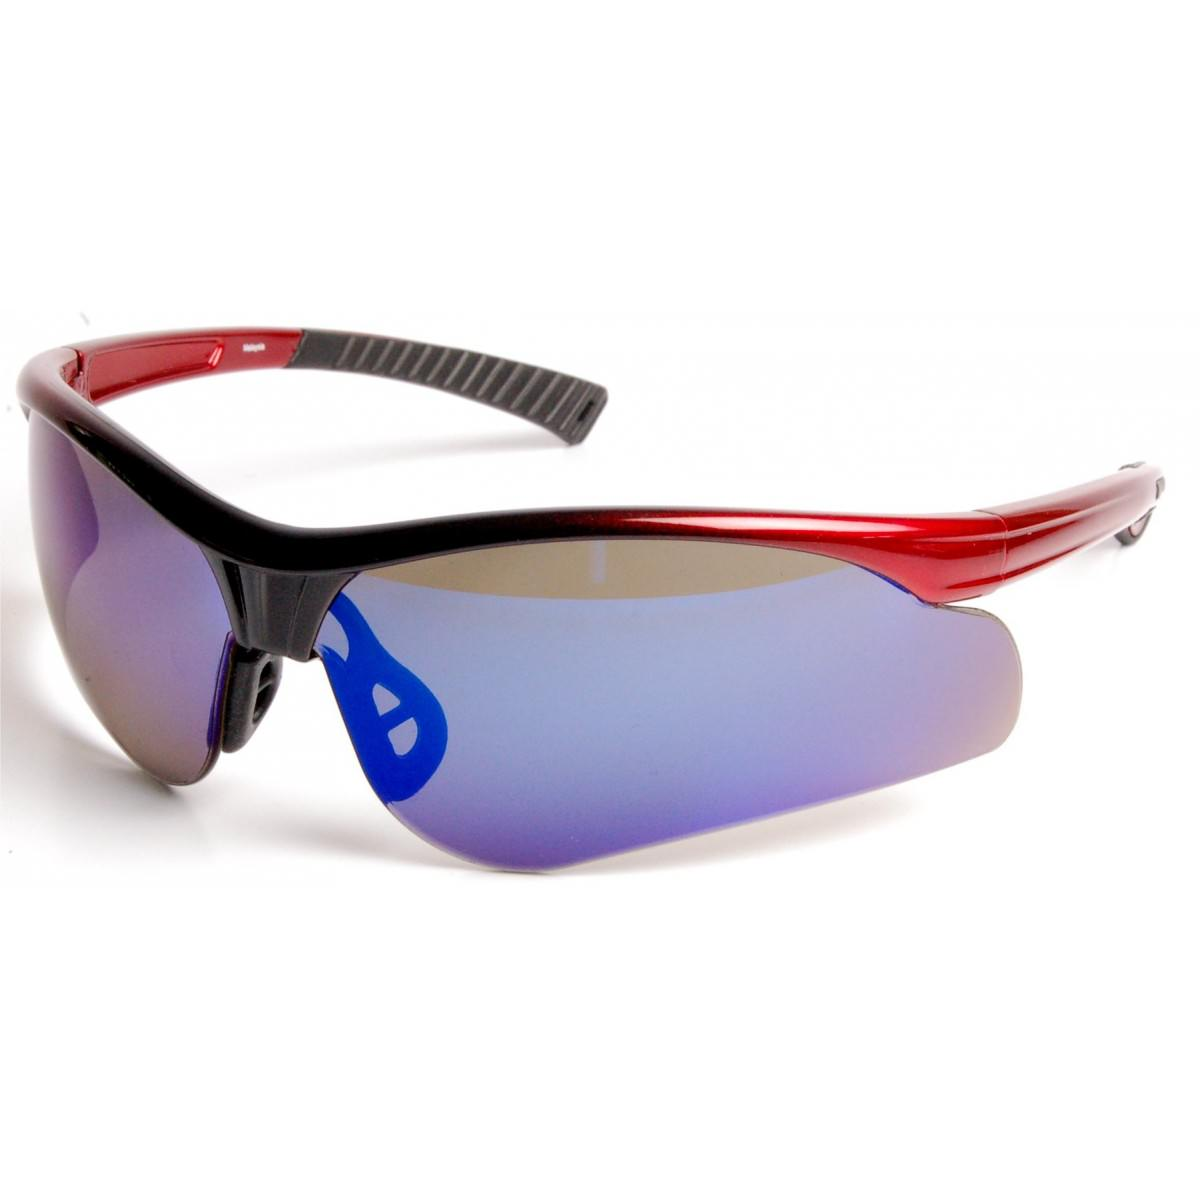 Solar Blue Mirrored Safety Glasses